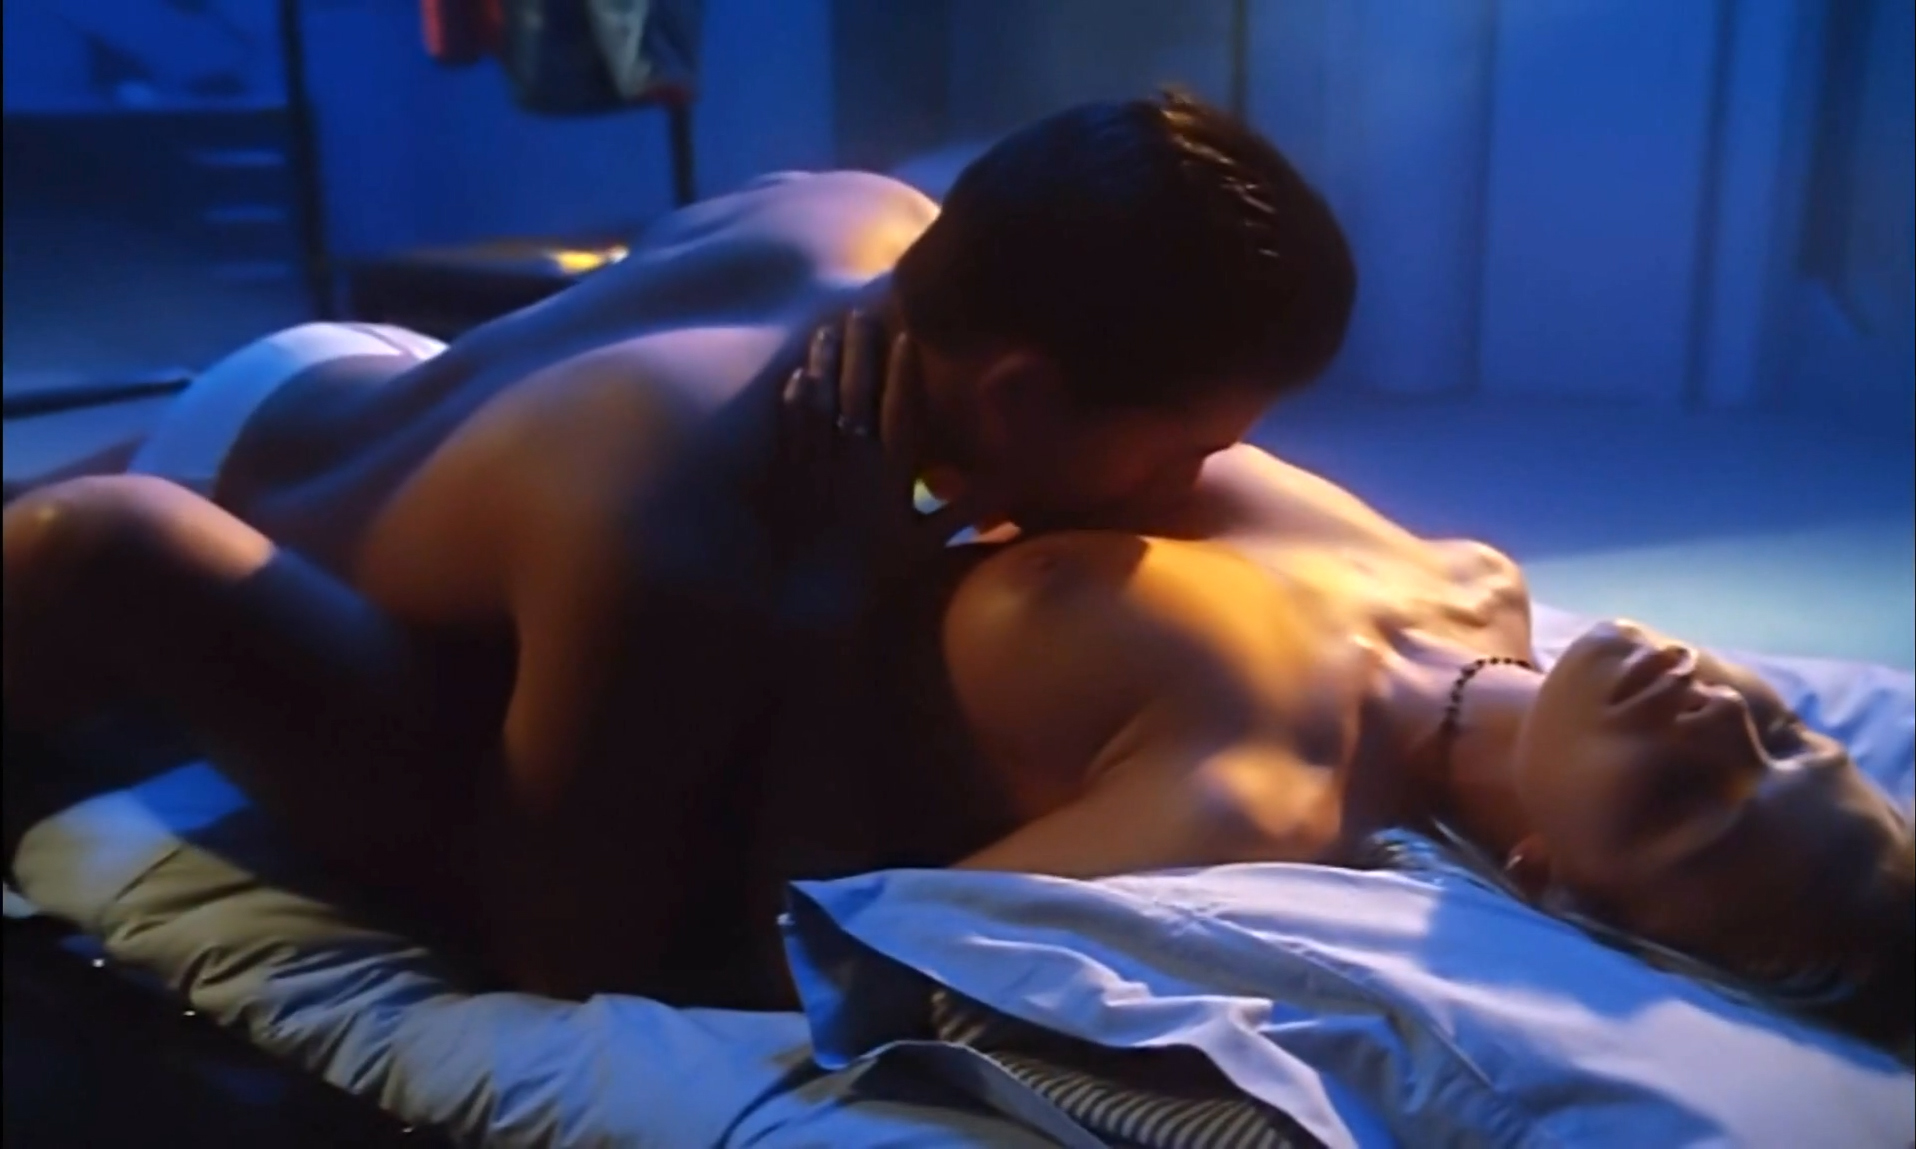 Jaime pressley sex scene